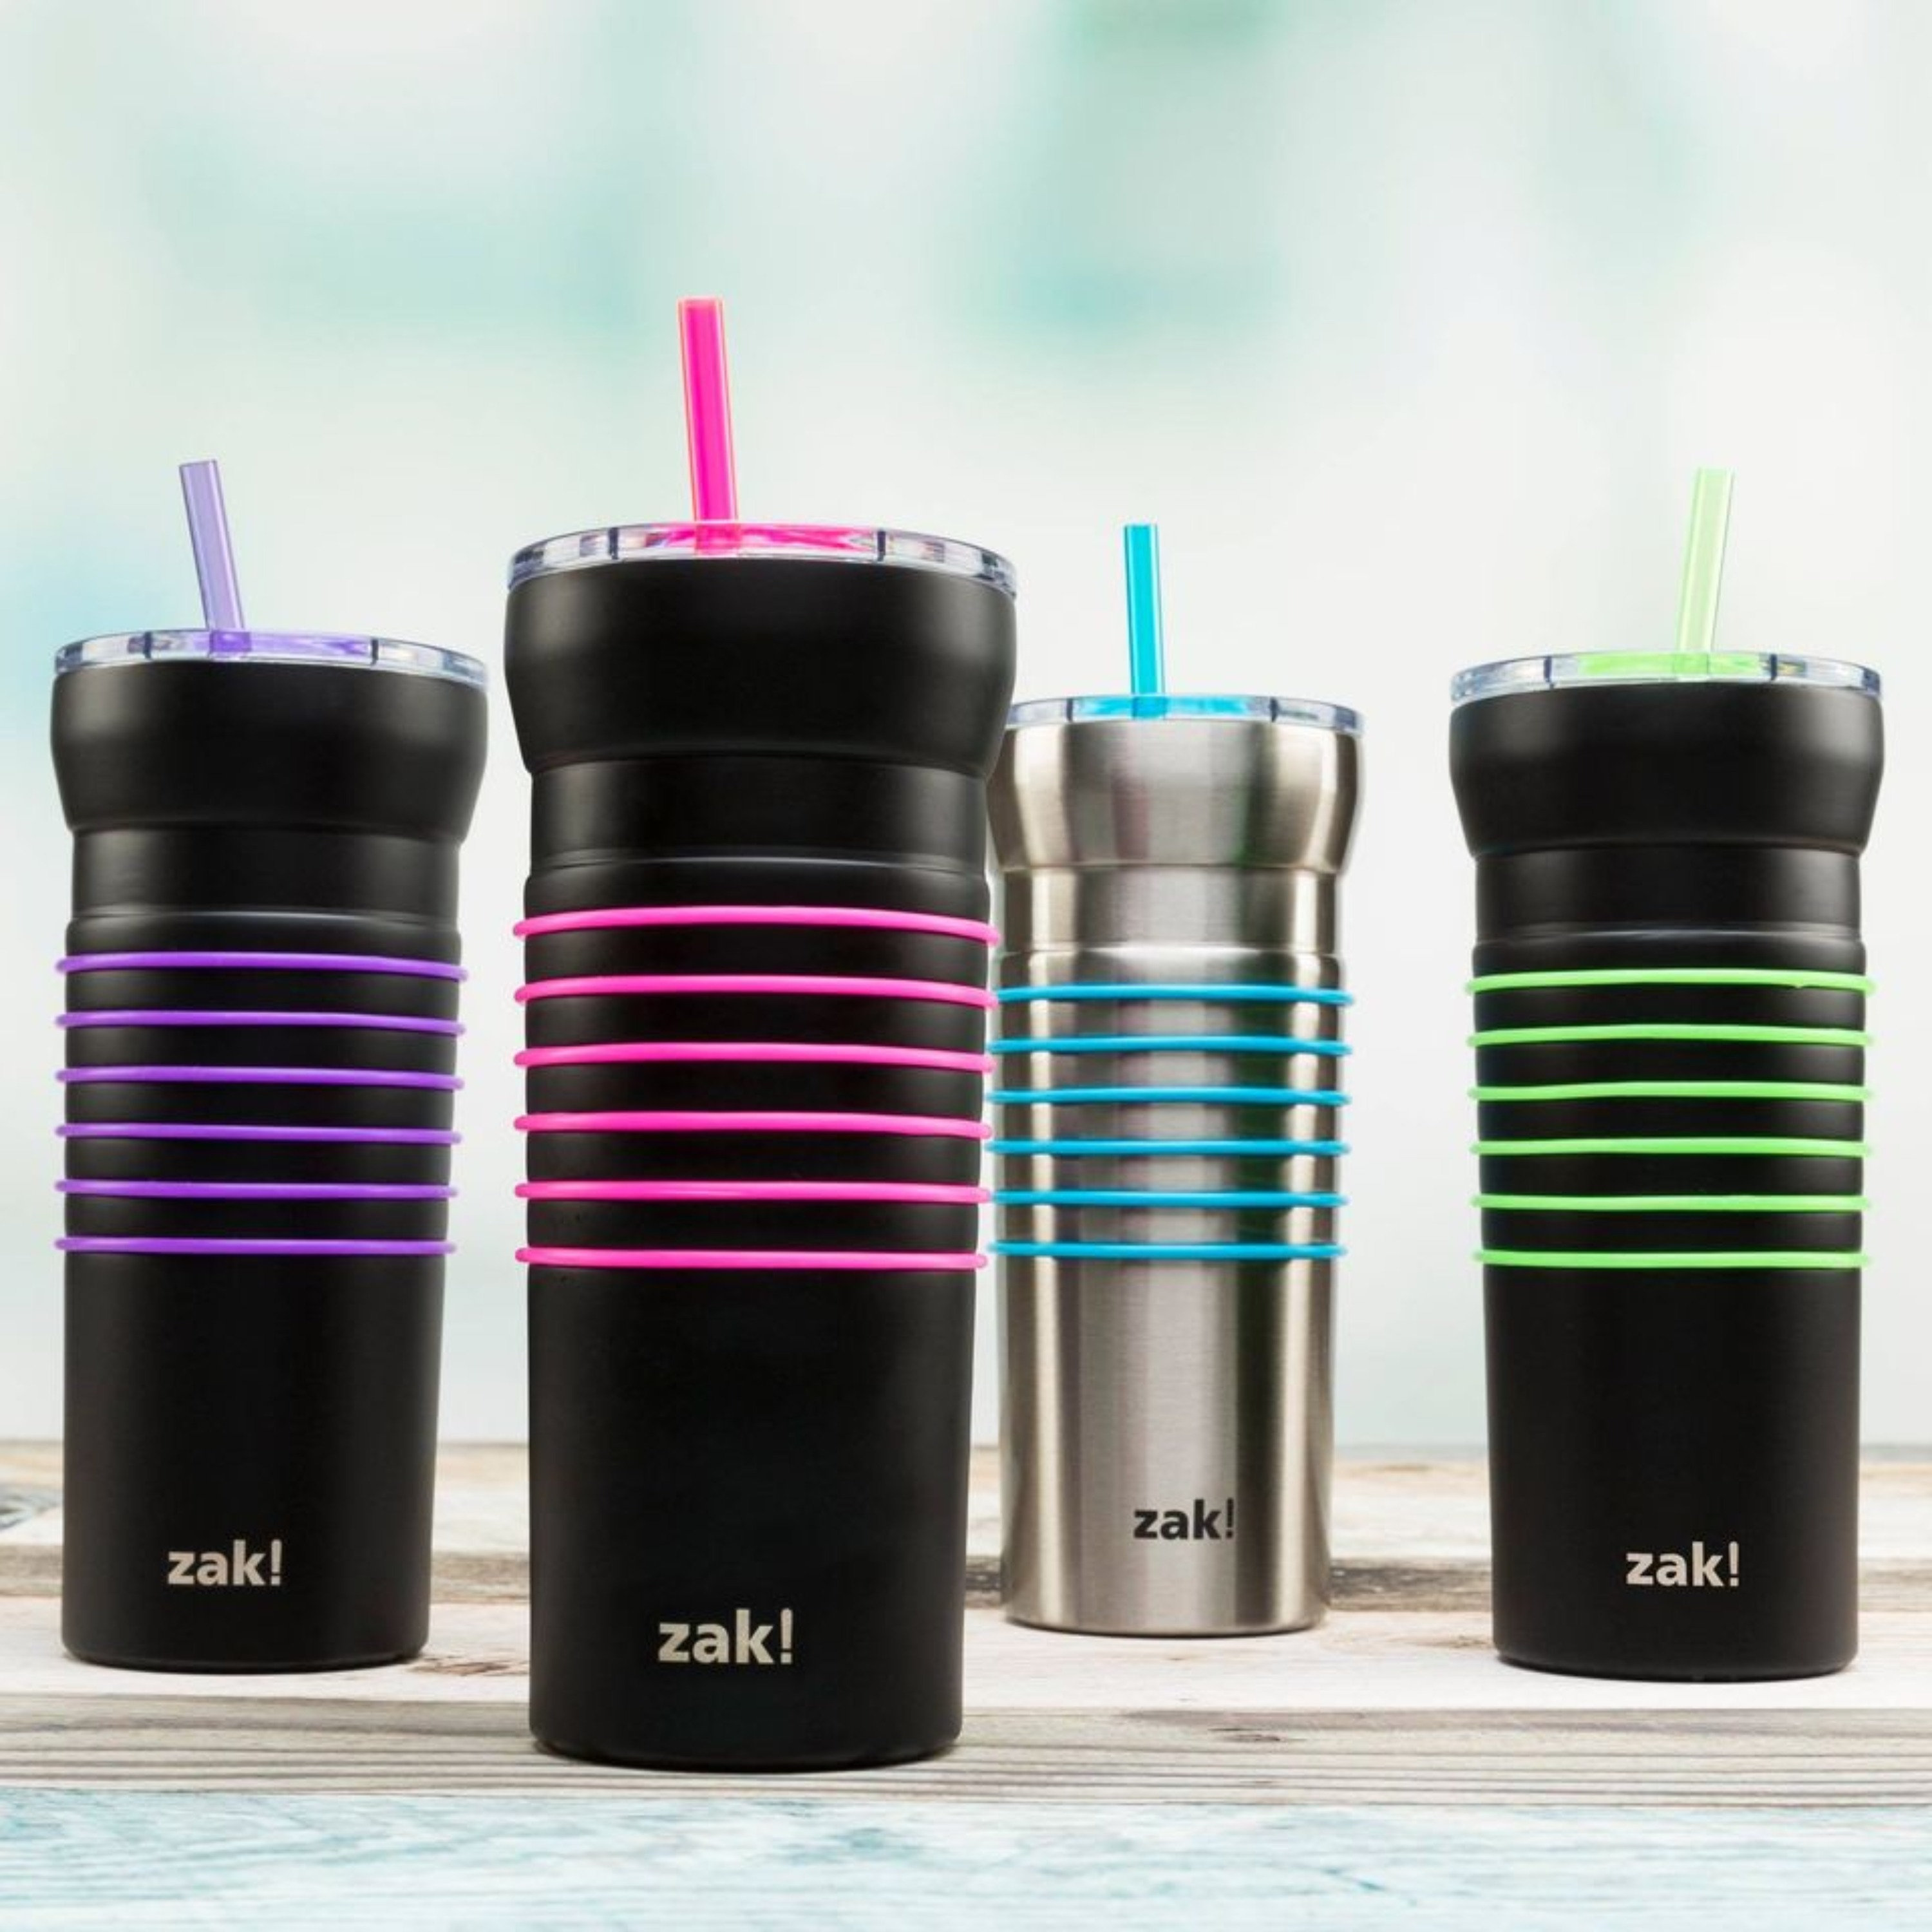 HydraTrak 20 ounce Vacuum Insulated Stainless Steel Tumbler, Black with Pink Rings slideshow image 4